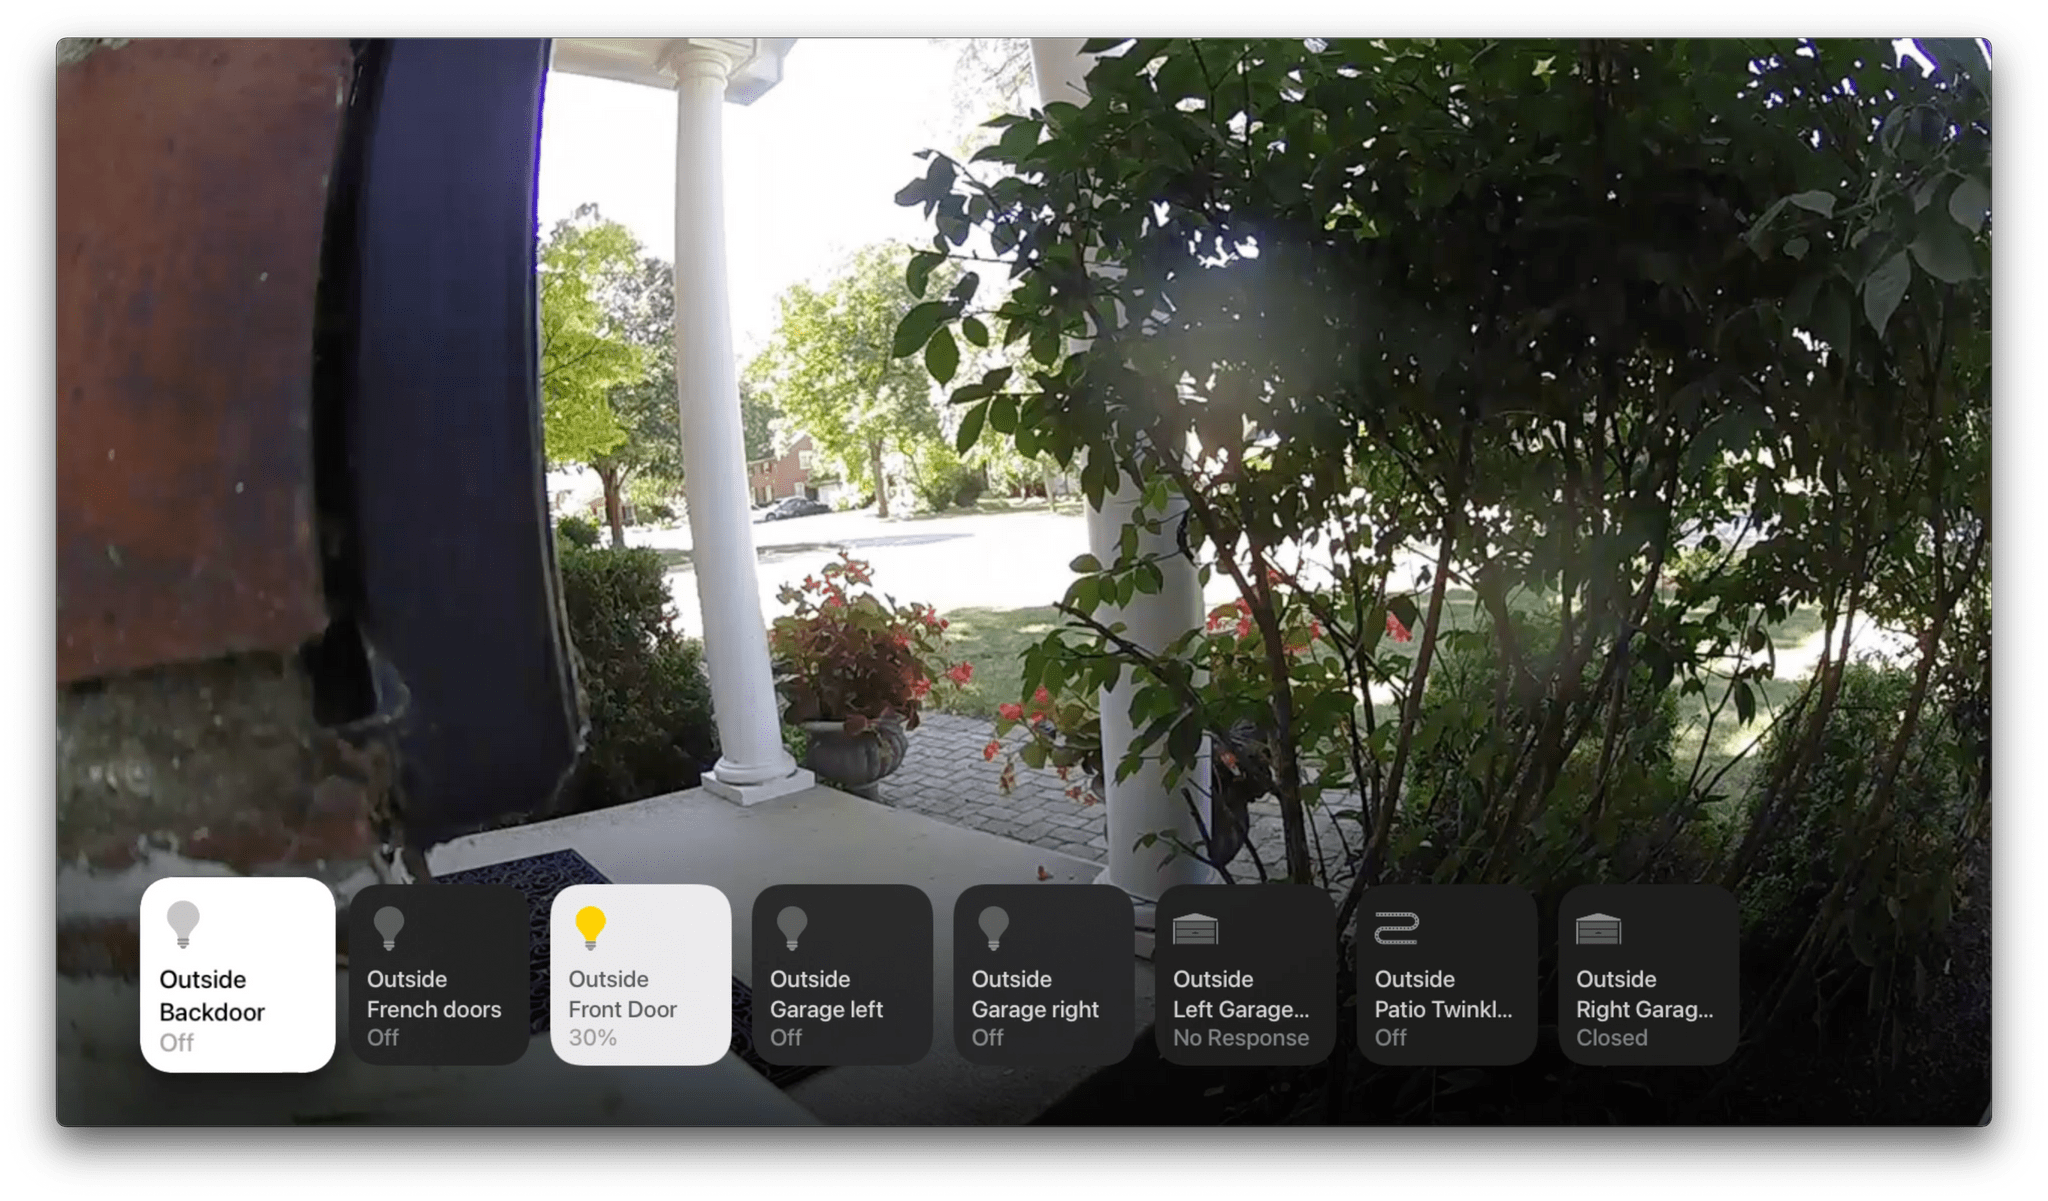 You can control individual HomeKit devices from tvOS too.